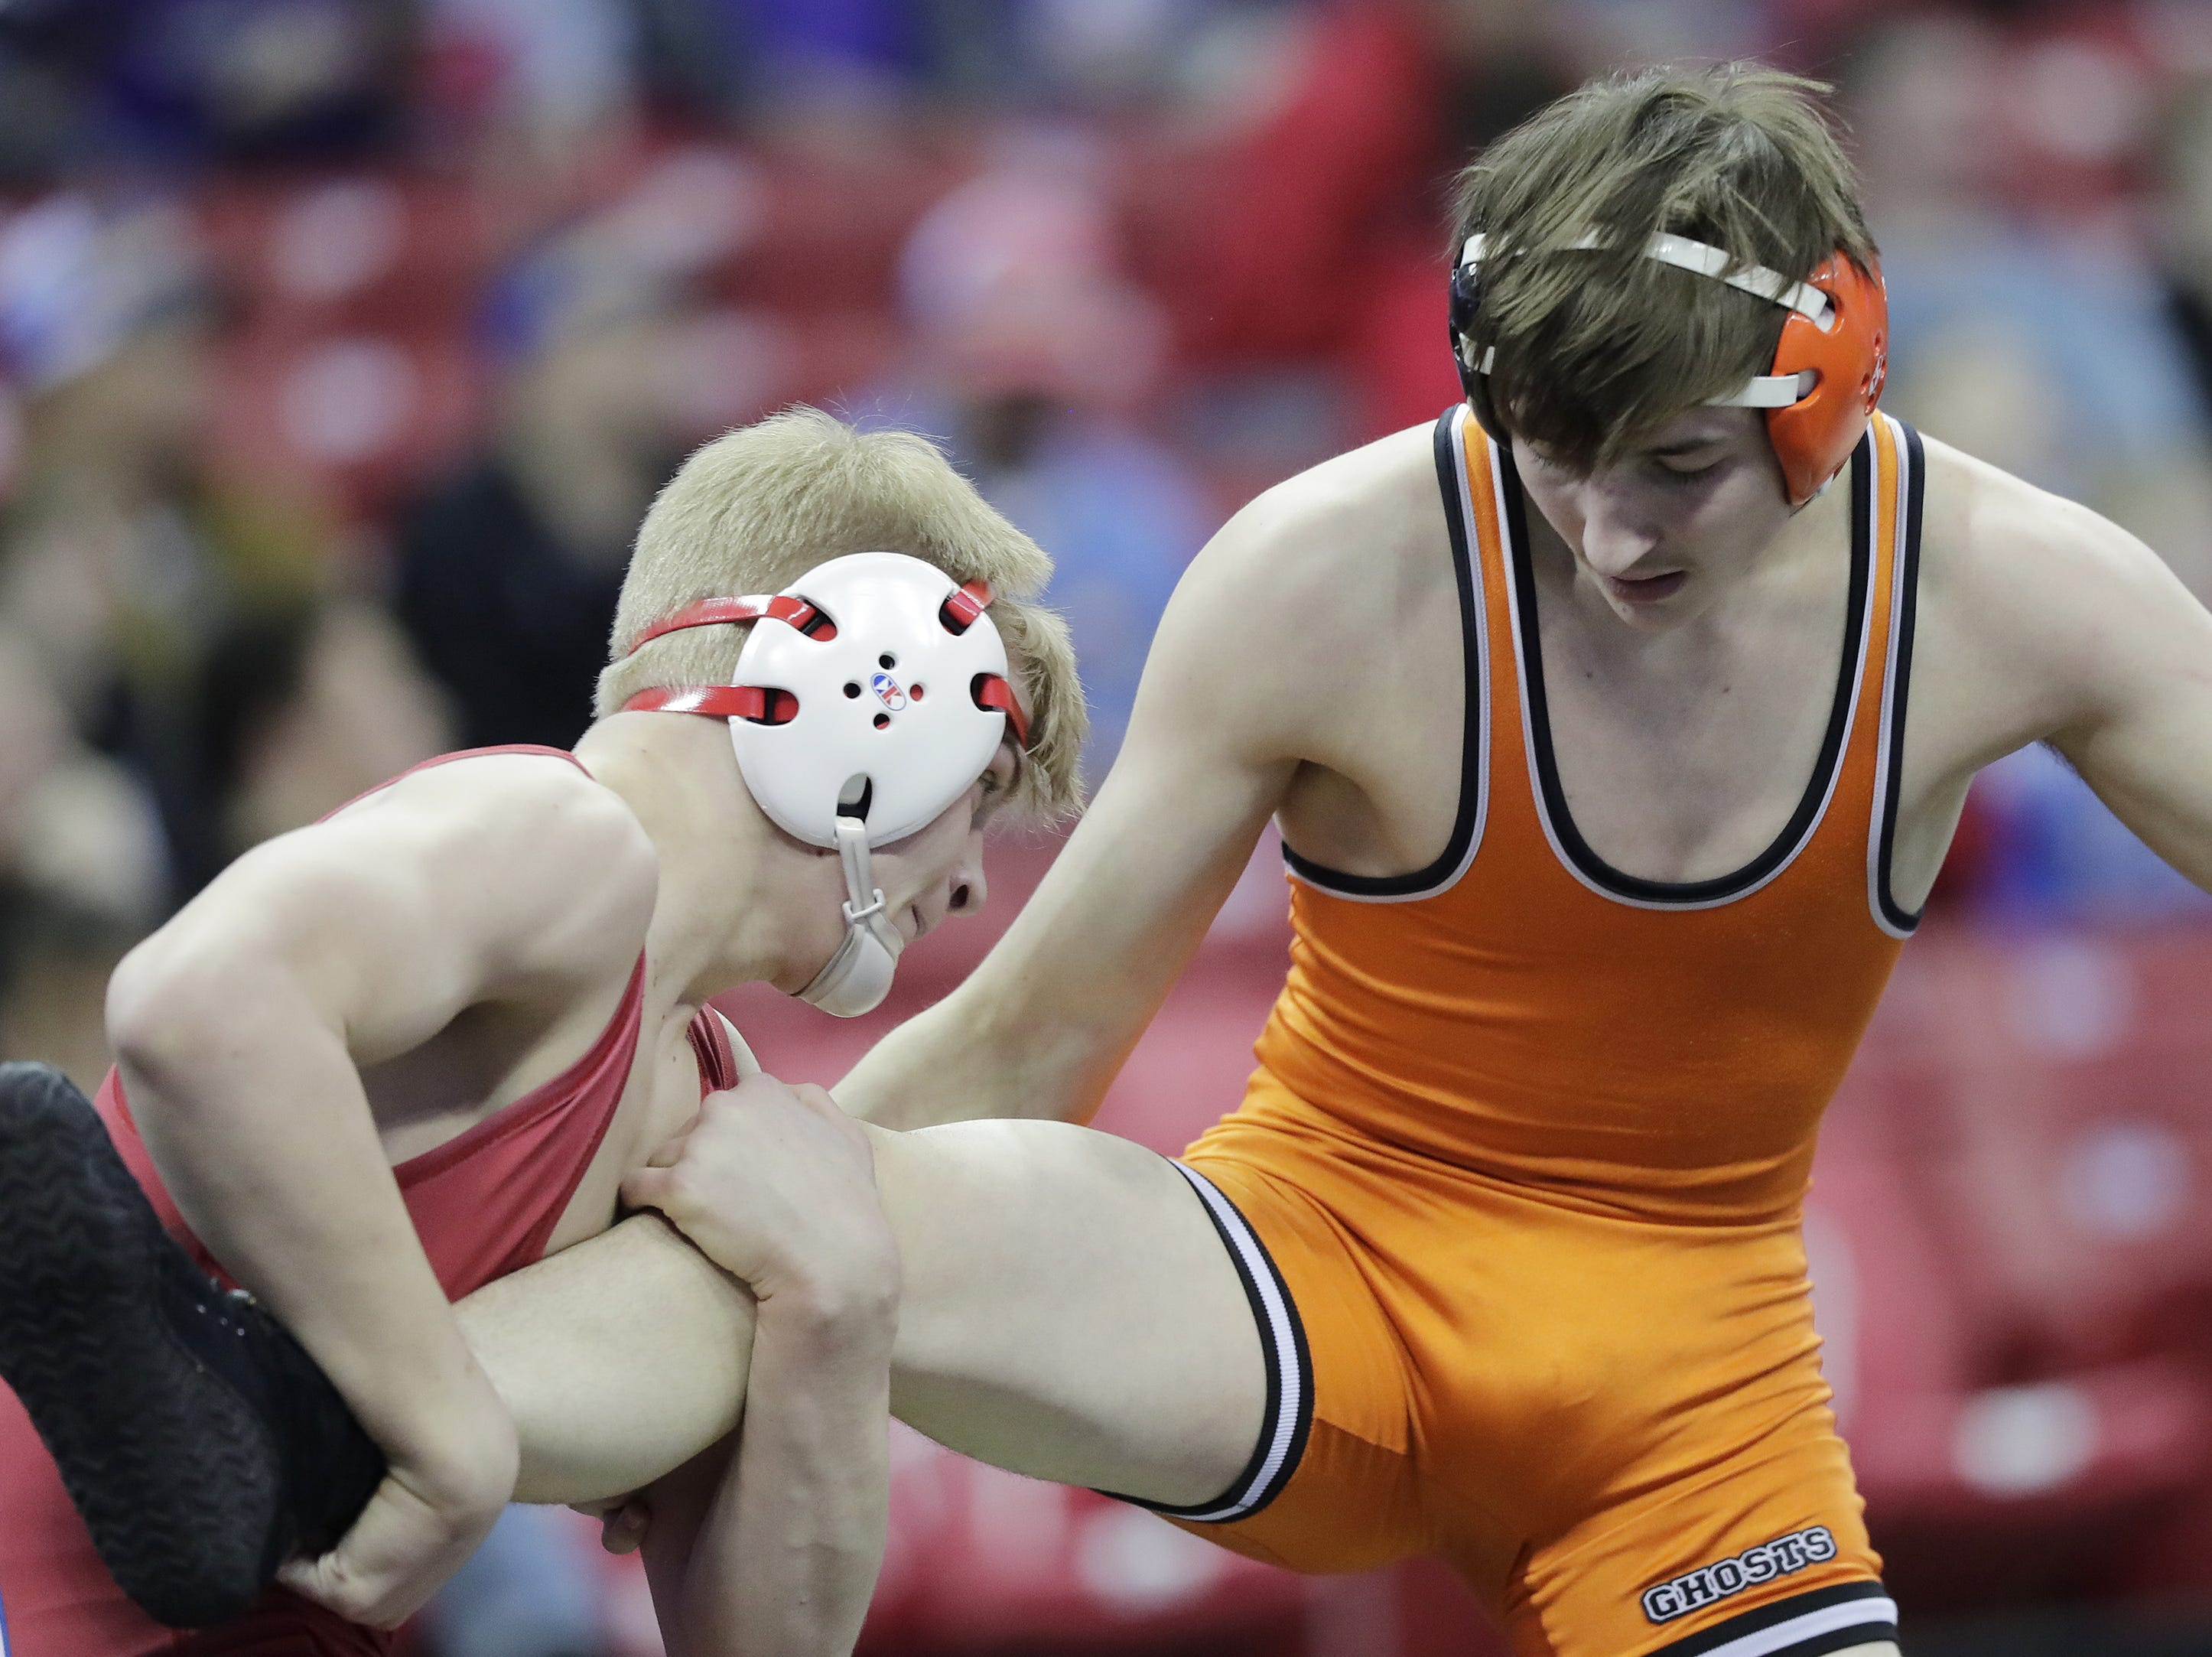 Kaukauna's John Diener wrestles in a Division 1 138-pound preliminary match at the WIAA state individual wrestling tournament at the Kohl Center on Thursday, February 21, 2019 in Madison, Wis. Adam Wesley/USA TODAY NETWORK-Wisconsin